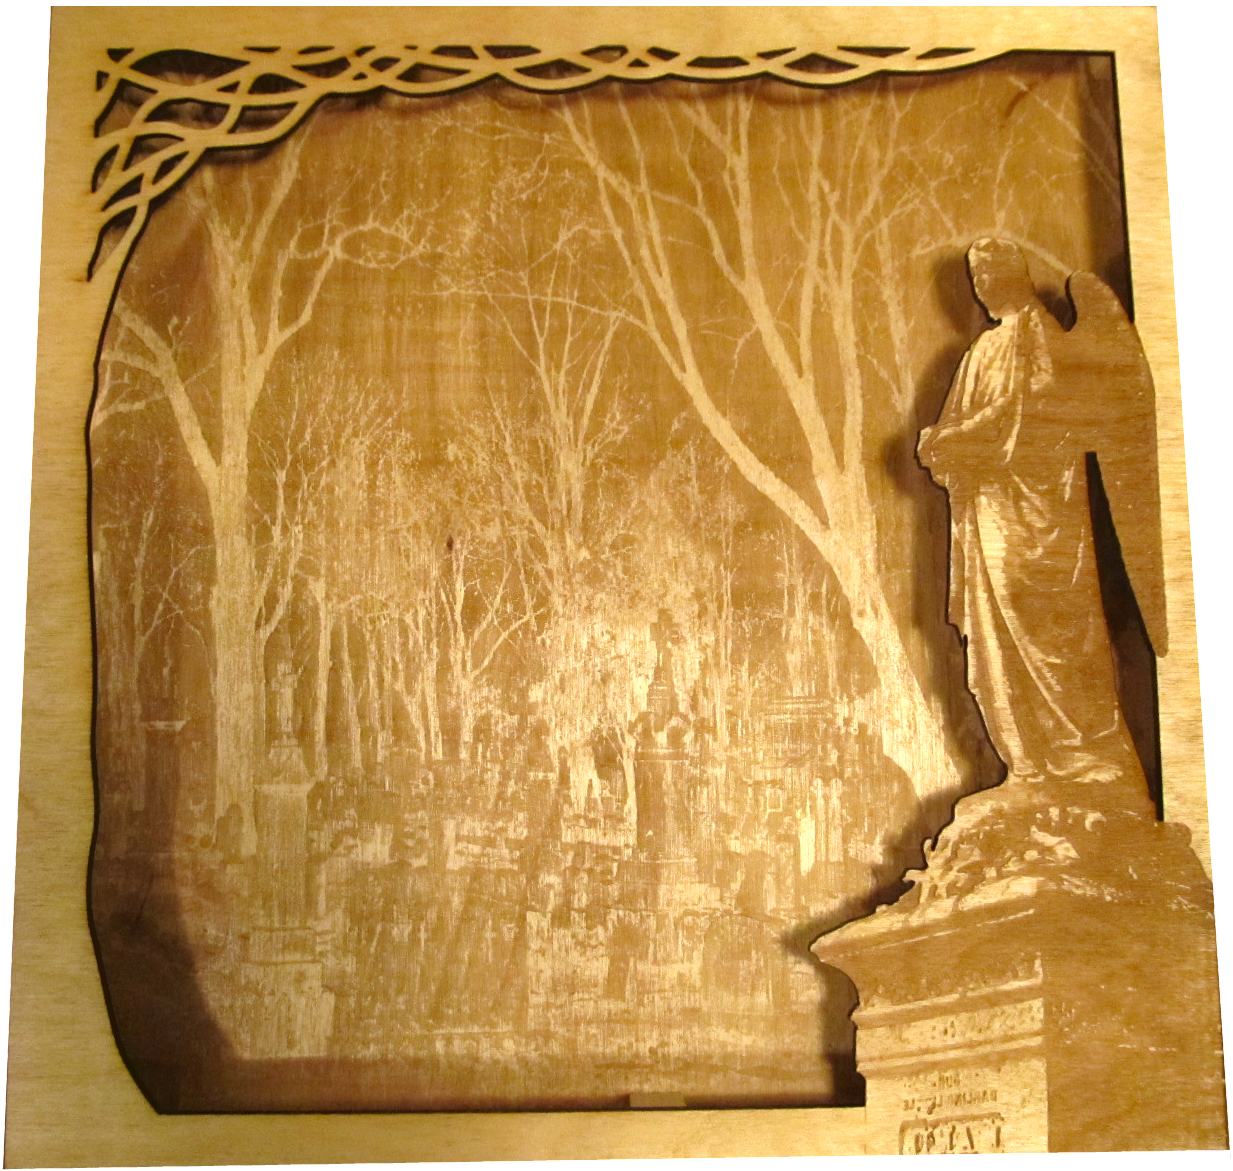 A laser cut piece, one stacked on top of the other for depth. The top piece is a cut out featuring an angelic grave stone and the back piece is a picture of a graveyard with some well defined trees.